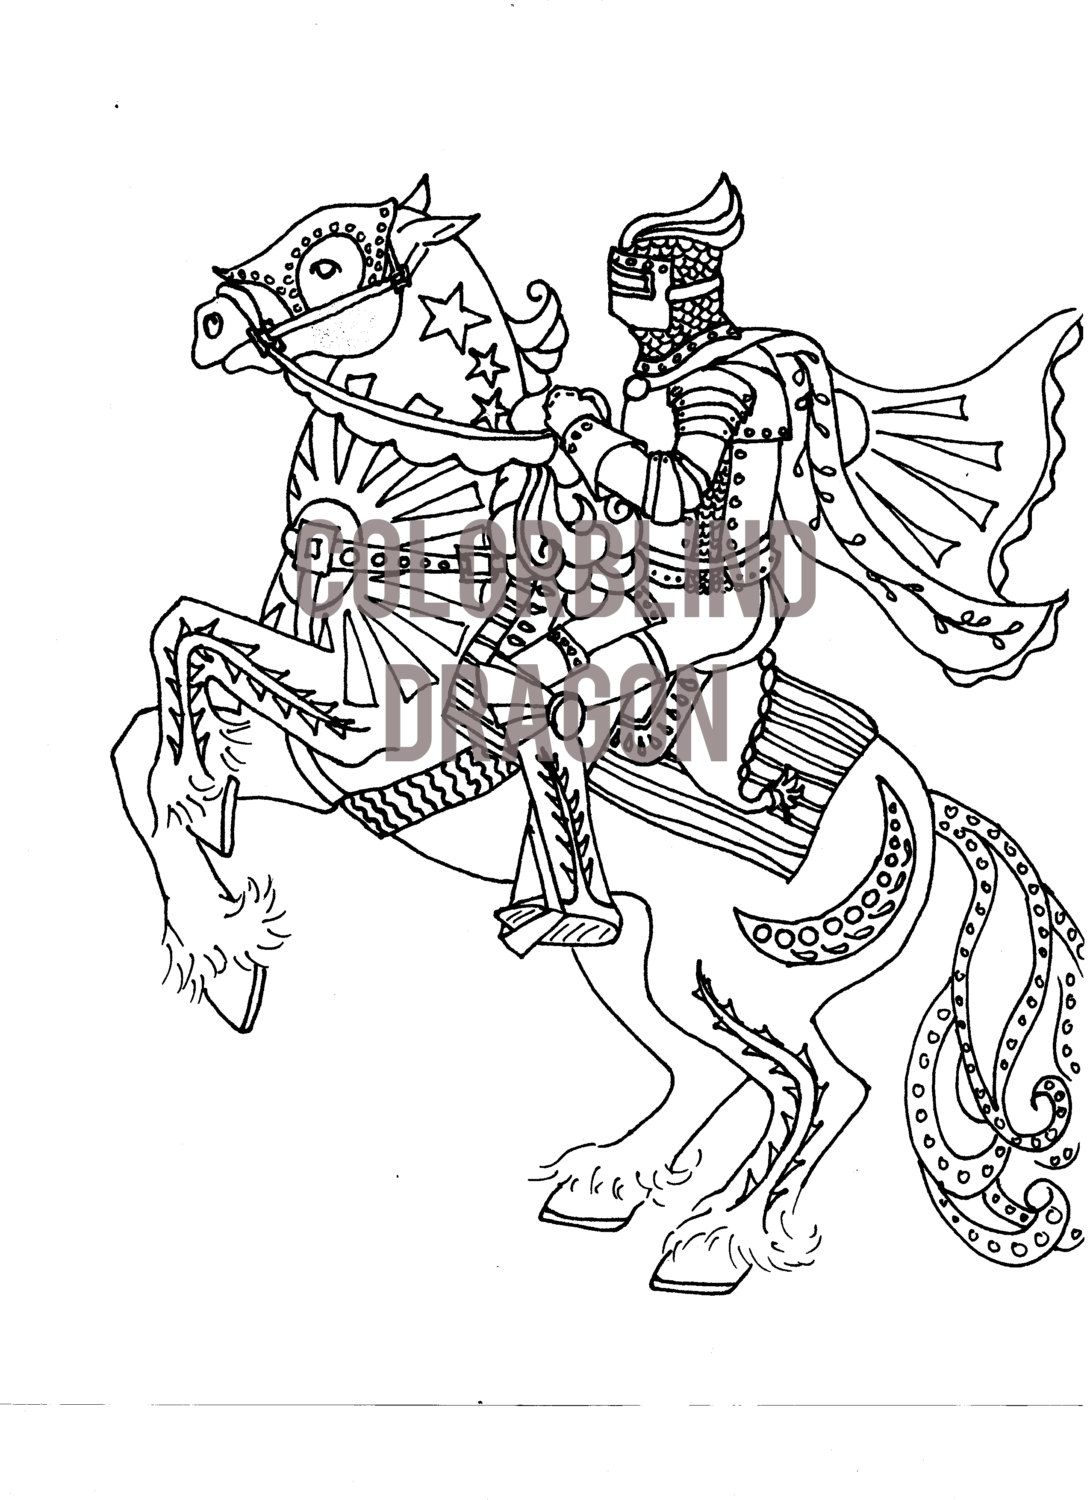 Horse Coloring Page Knight Coloring Page Midevil Dark Ages Riding Gallop Chivelry Saddle Cape Horse Coloring Pages Coloring Pages Horse Coloring [ 1500 x 1090 Pixel ]